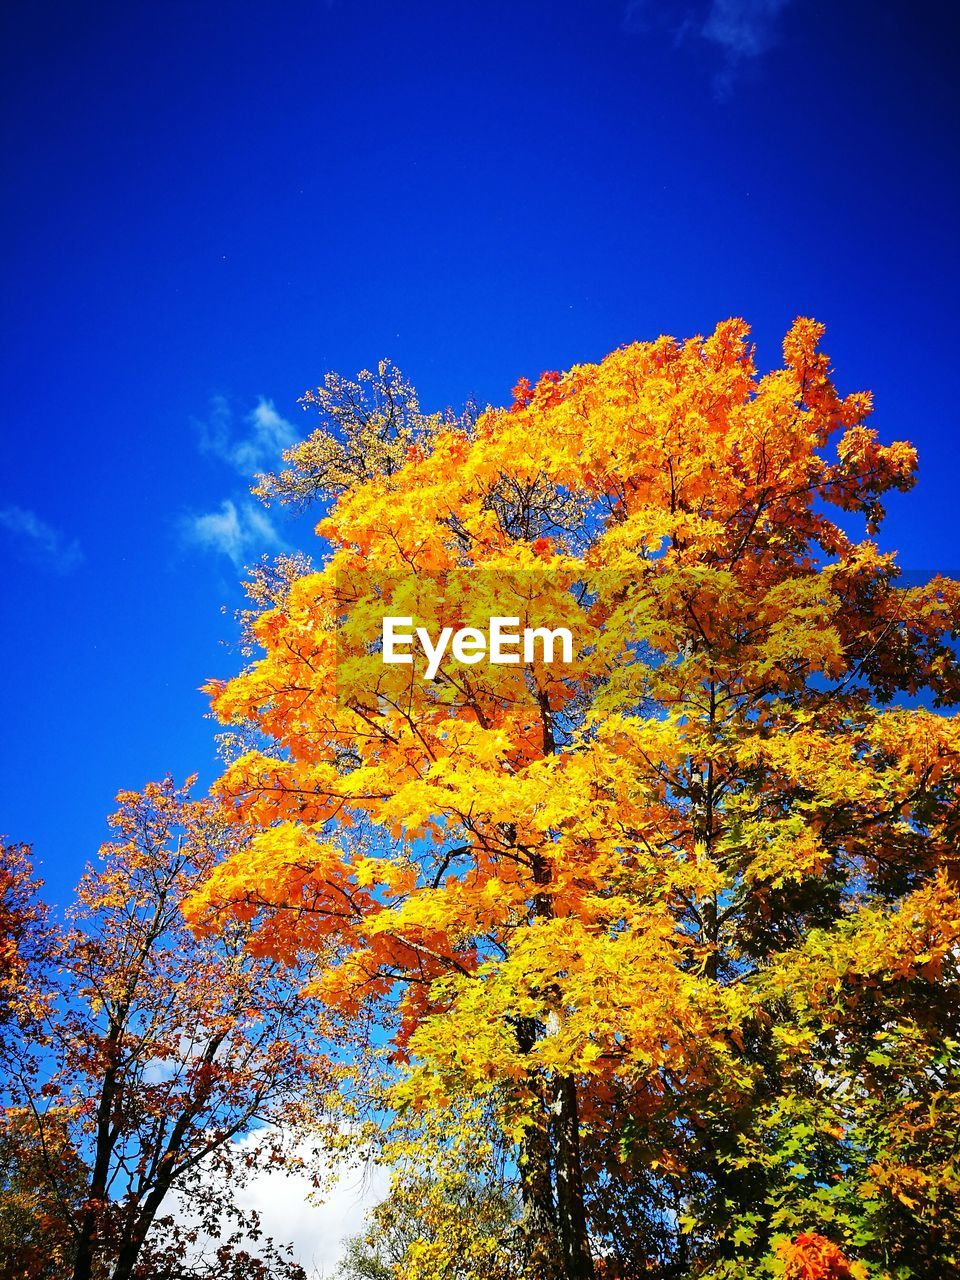 tree, autumn, low angle view, change, nature, growth, beauty in nature, no people, tranquility, day, outdoors, sky, blue, yellow, branch, clear sky, scenics, close-up